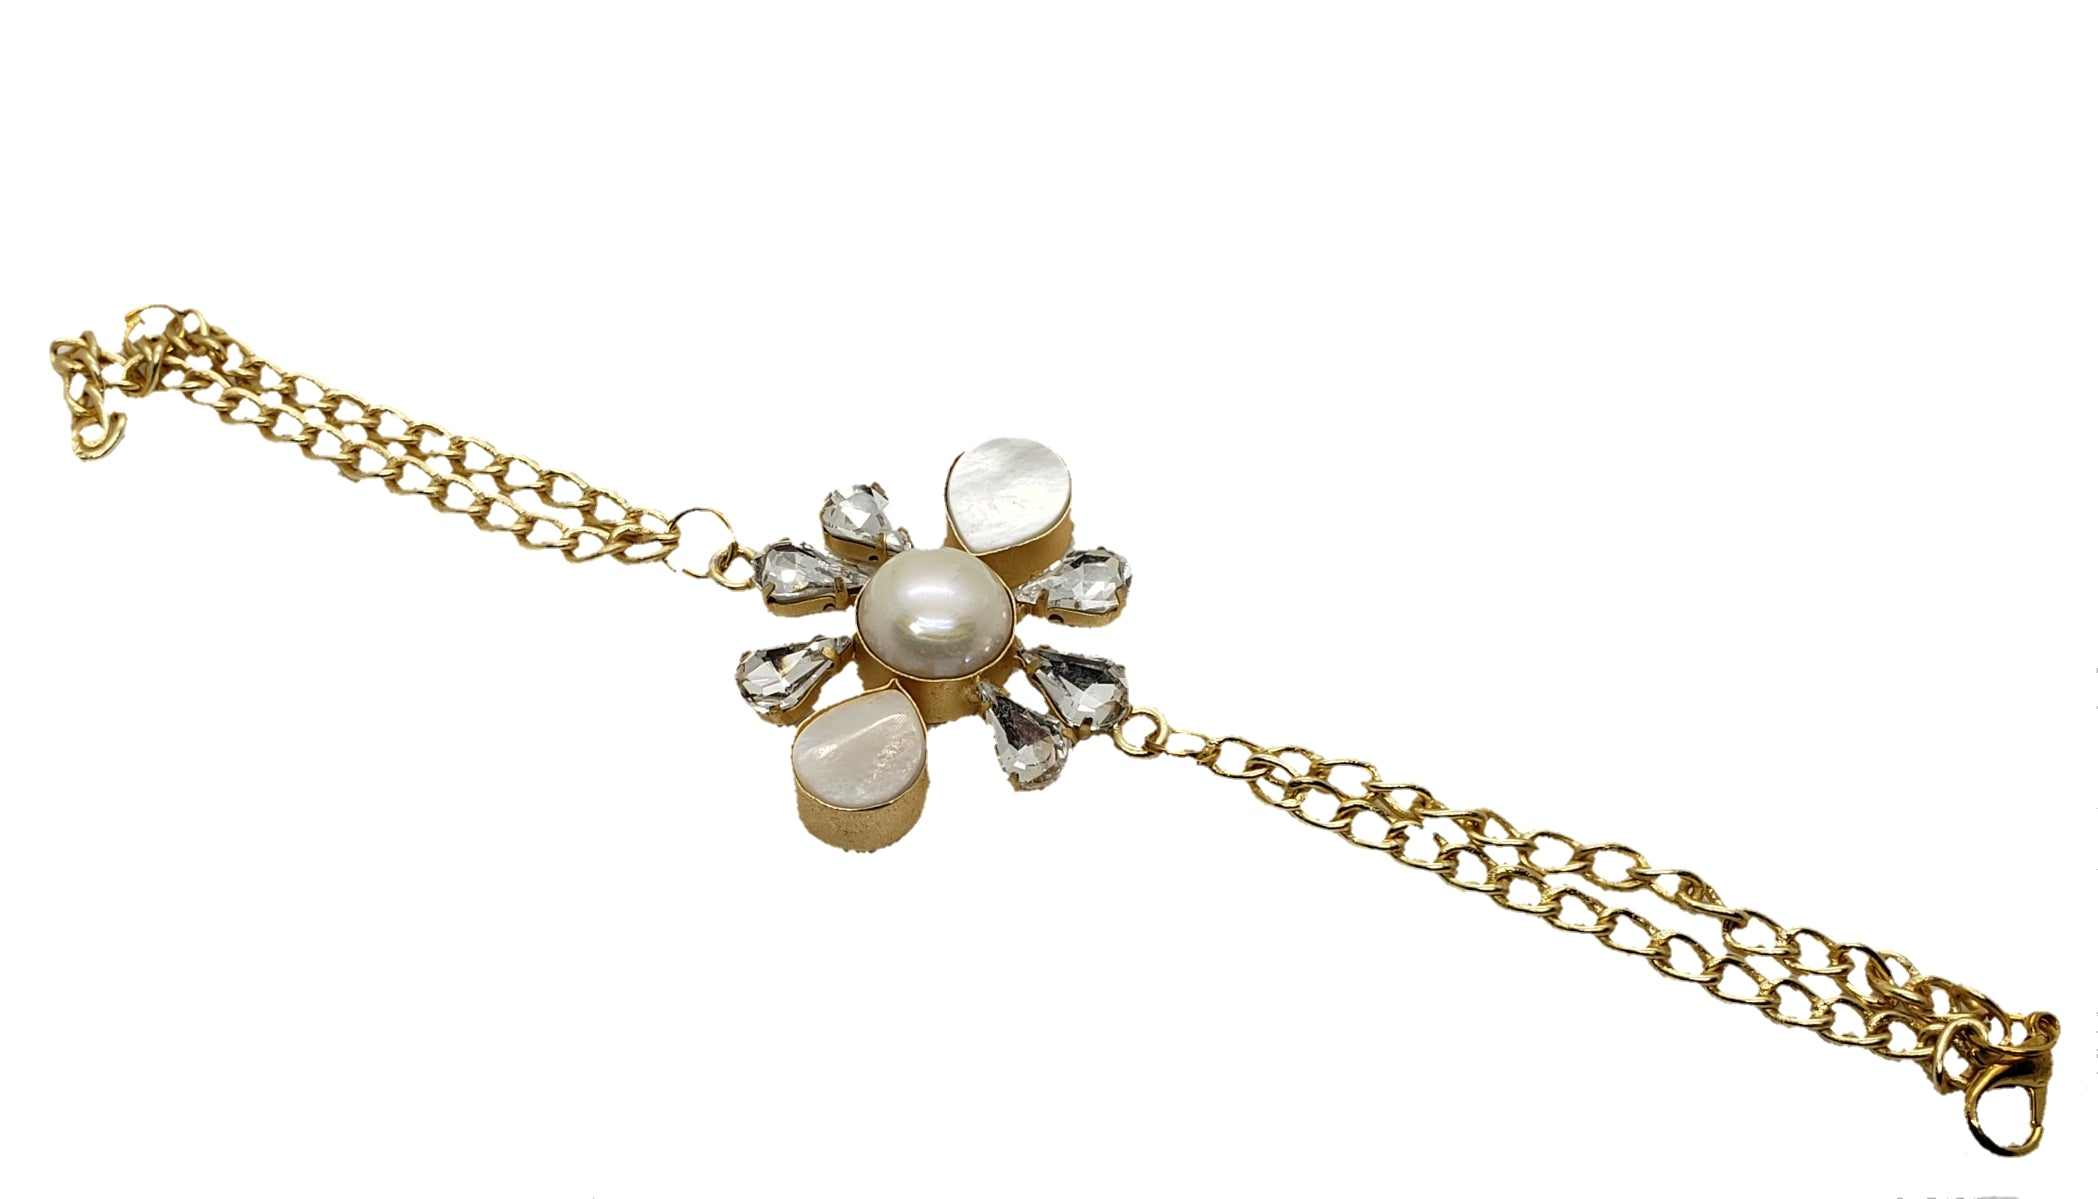 Clustered Glass stone Bracelet - The Bauble Shop